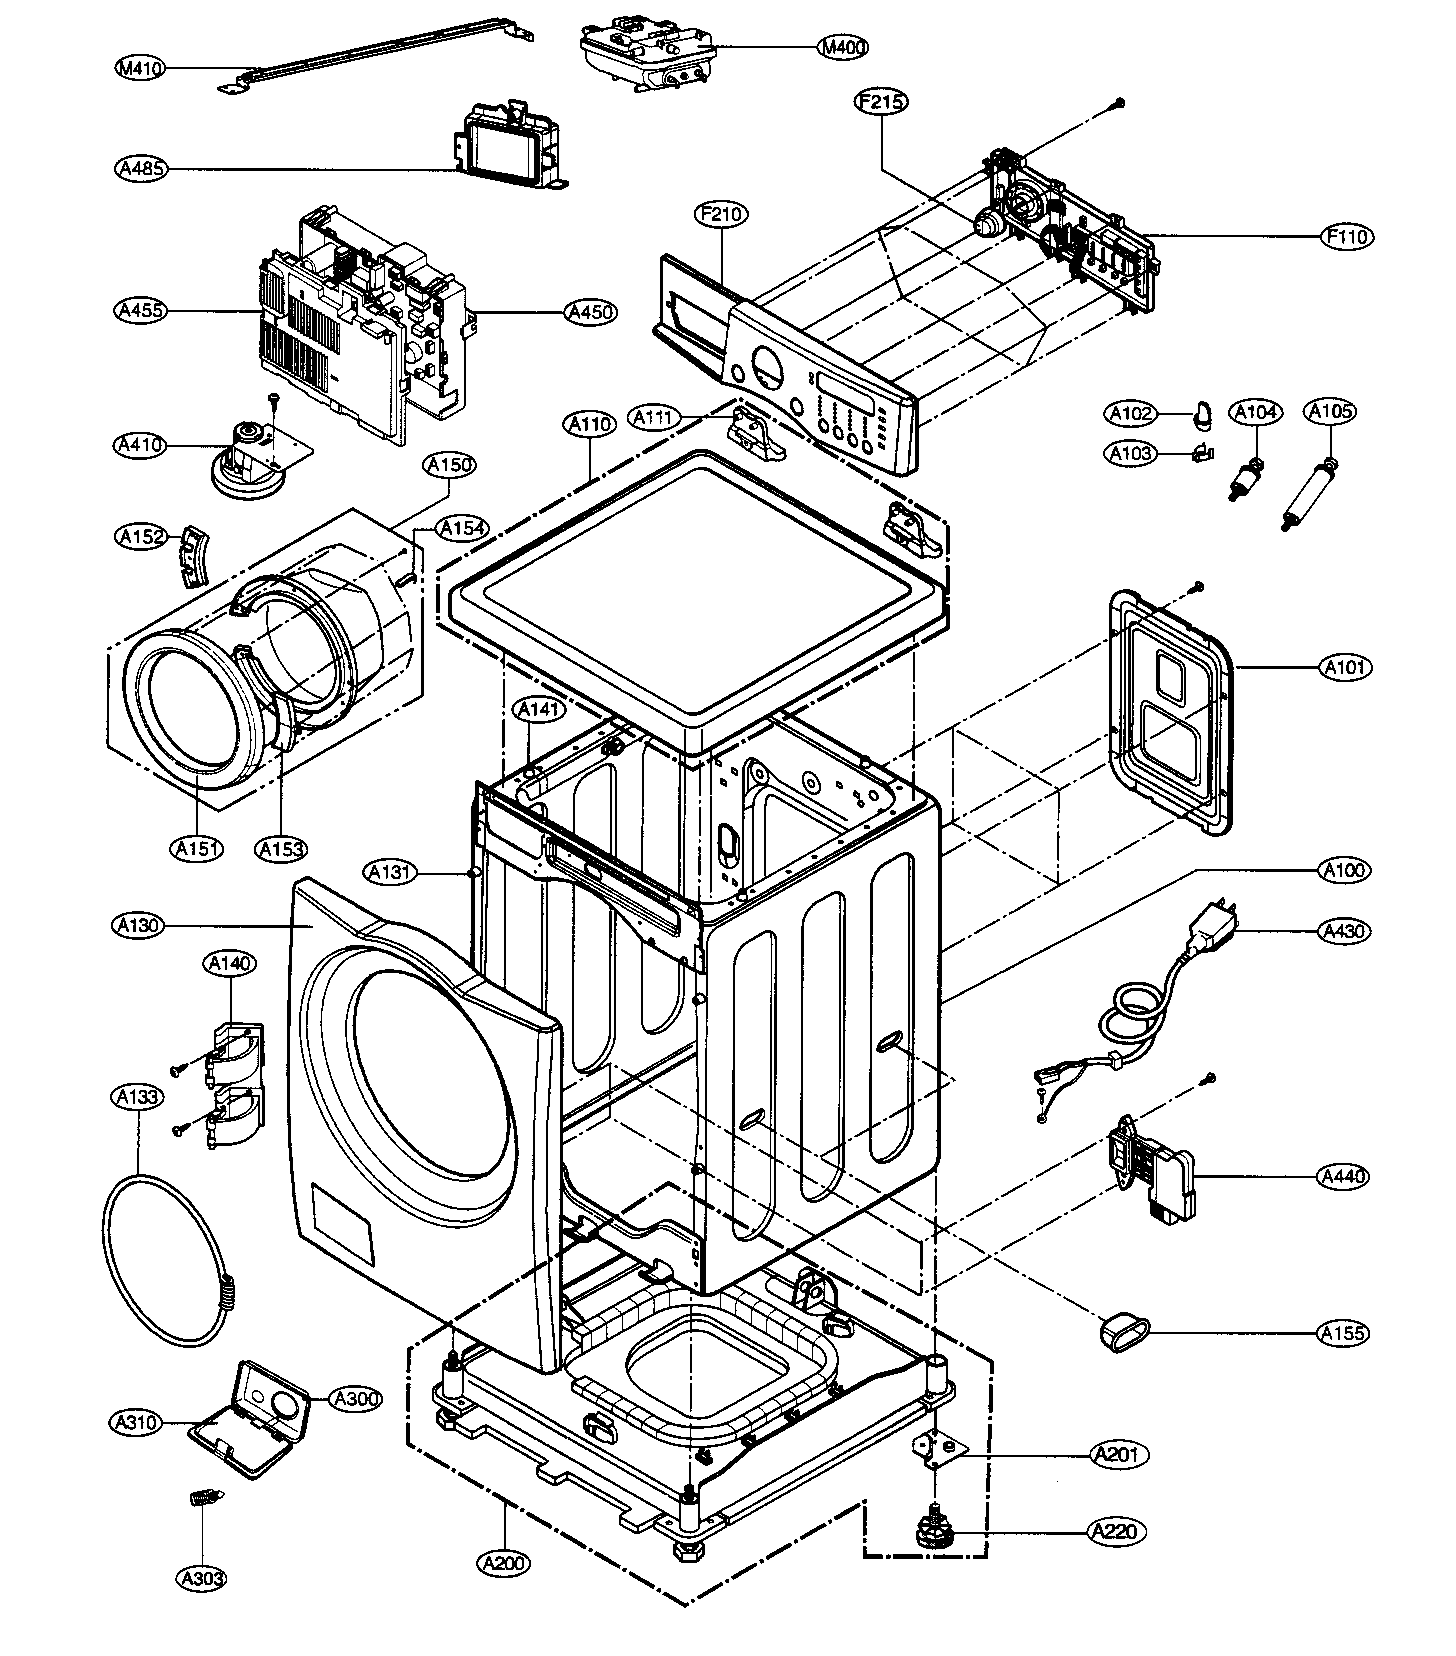 lg tromm dryer wiring diagram